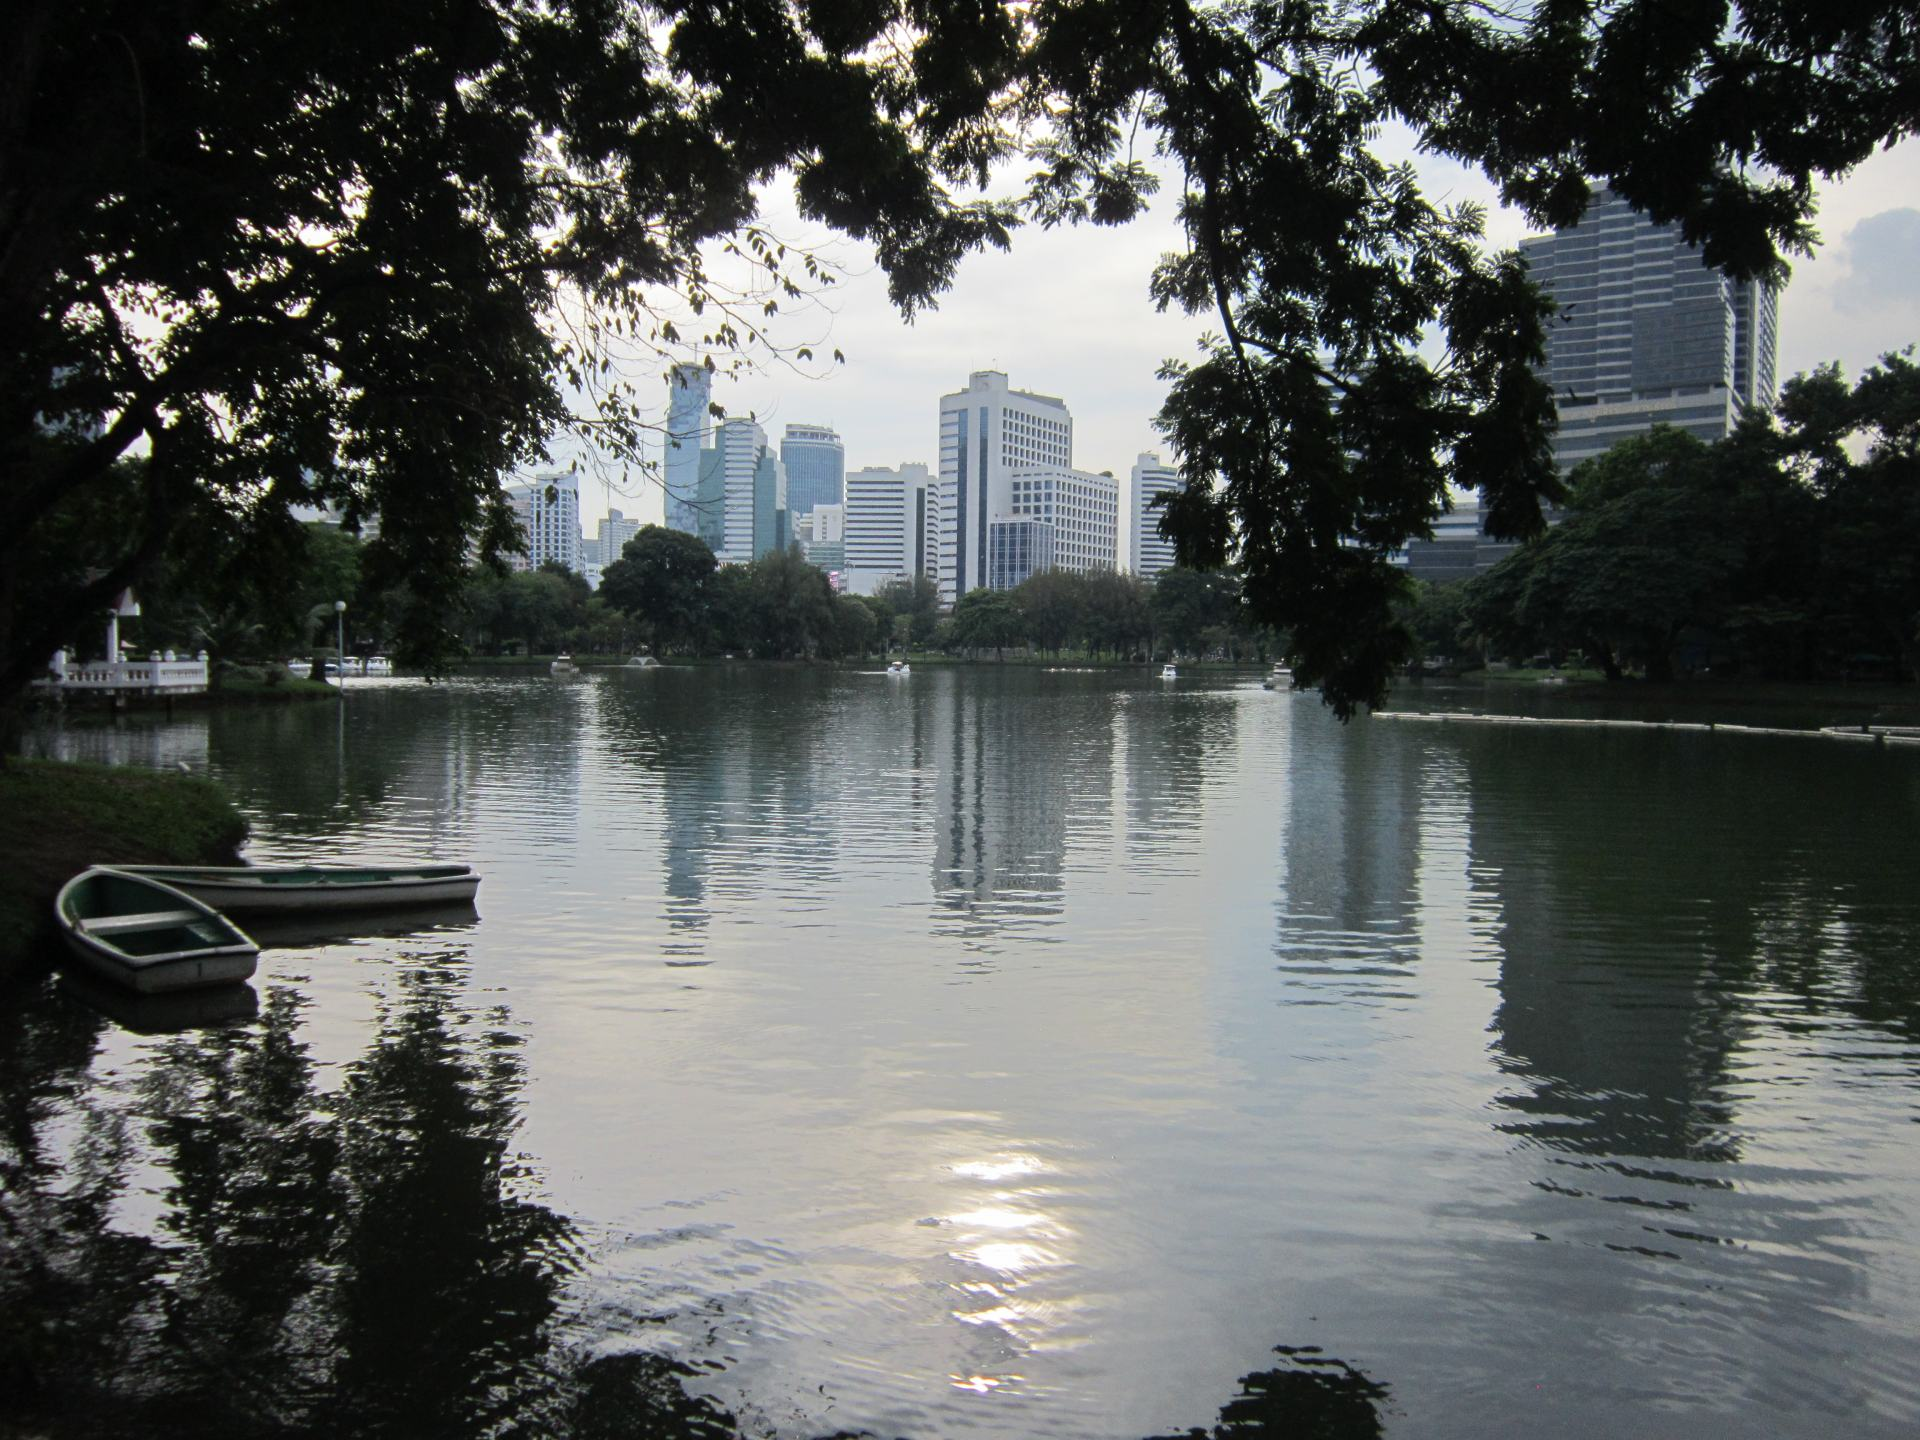 A view across a lake in Lumphini park, surrounded by trees with skyscrapers in the distance. The sun is reflecting on the water.